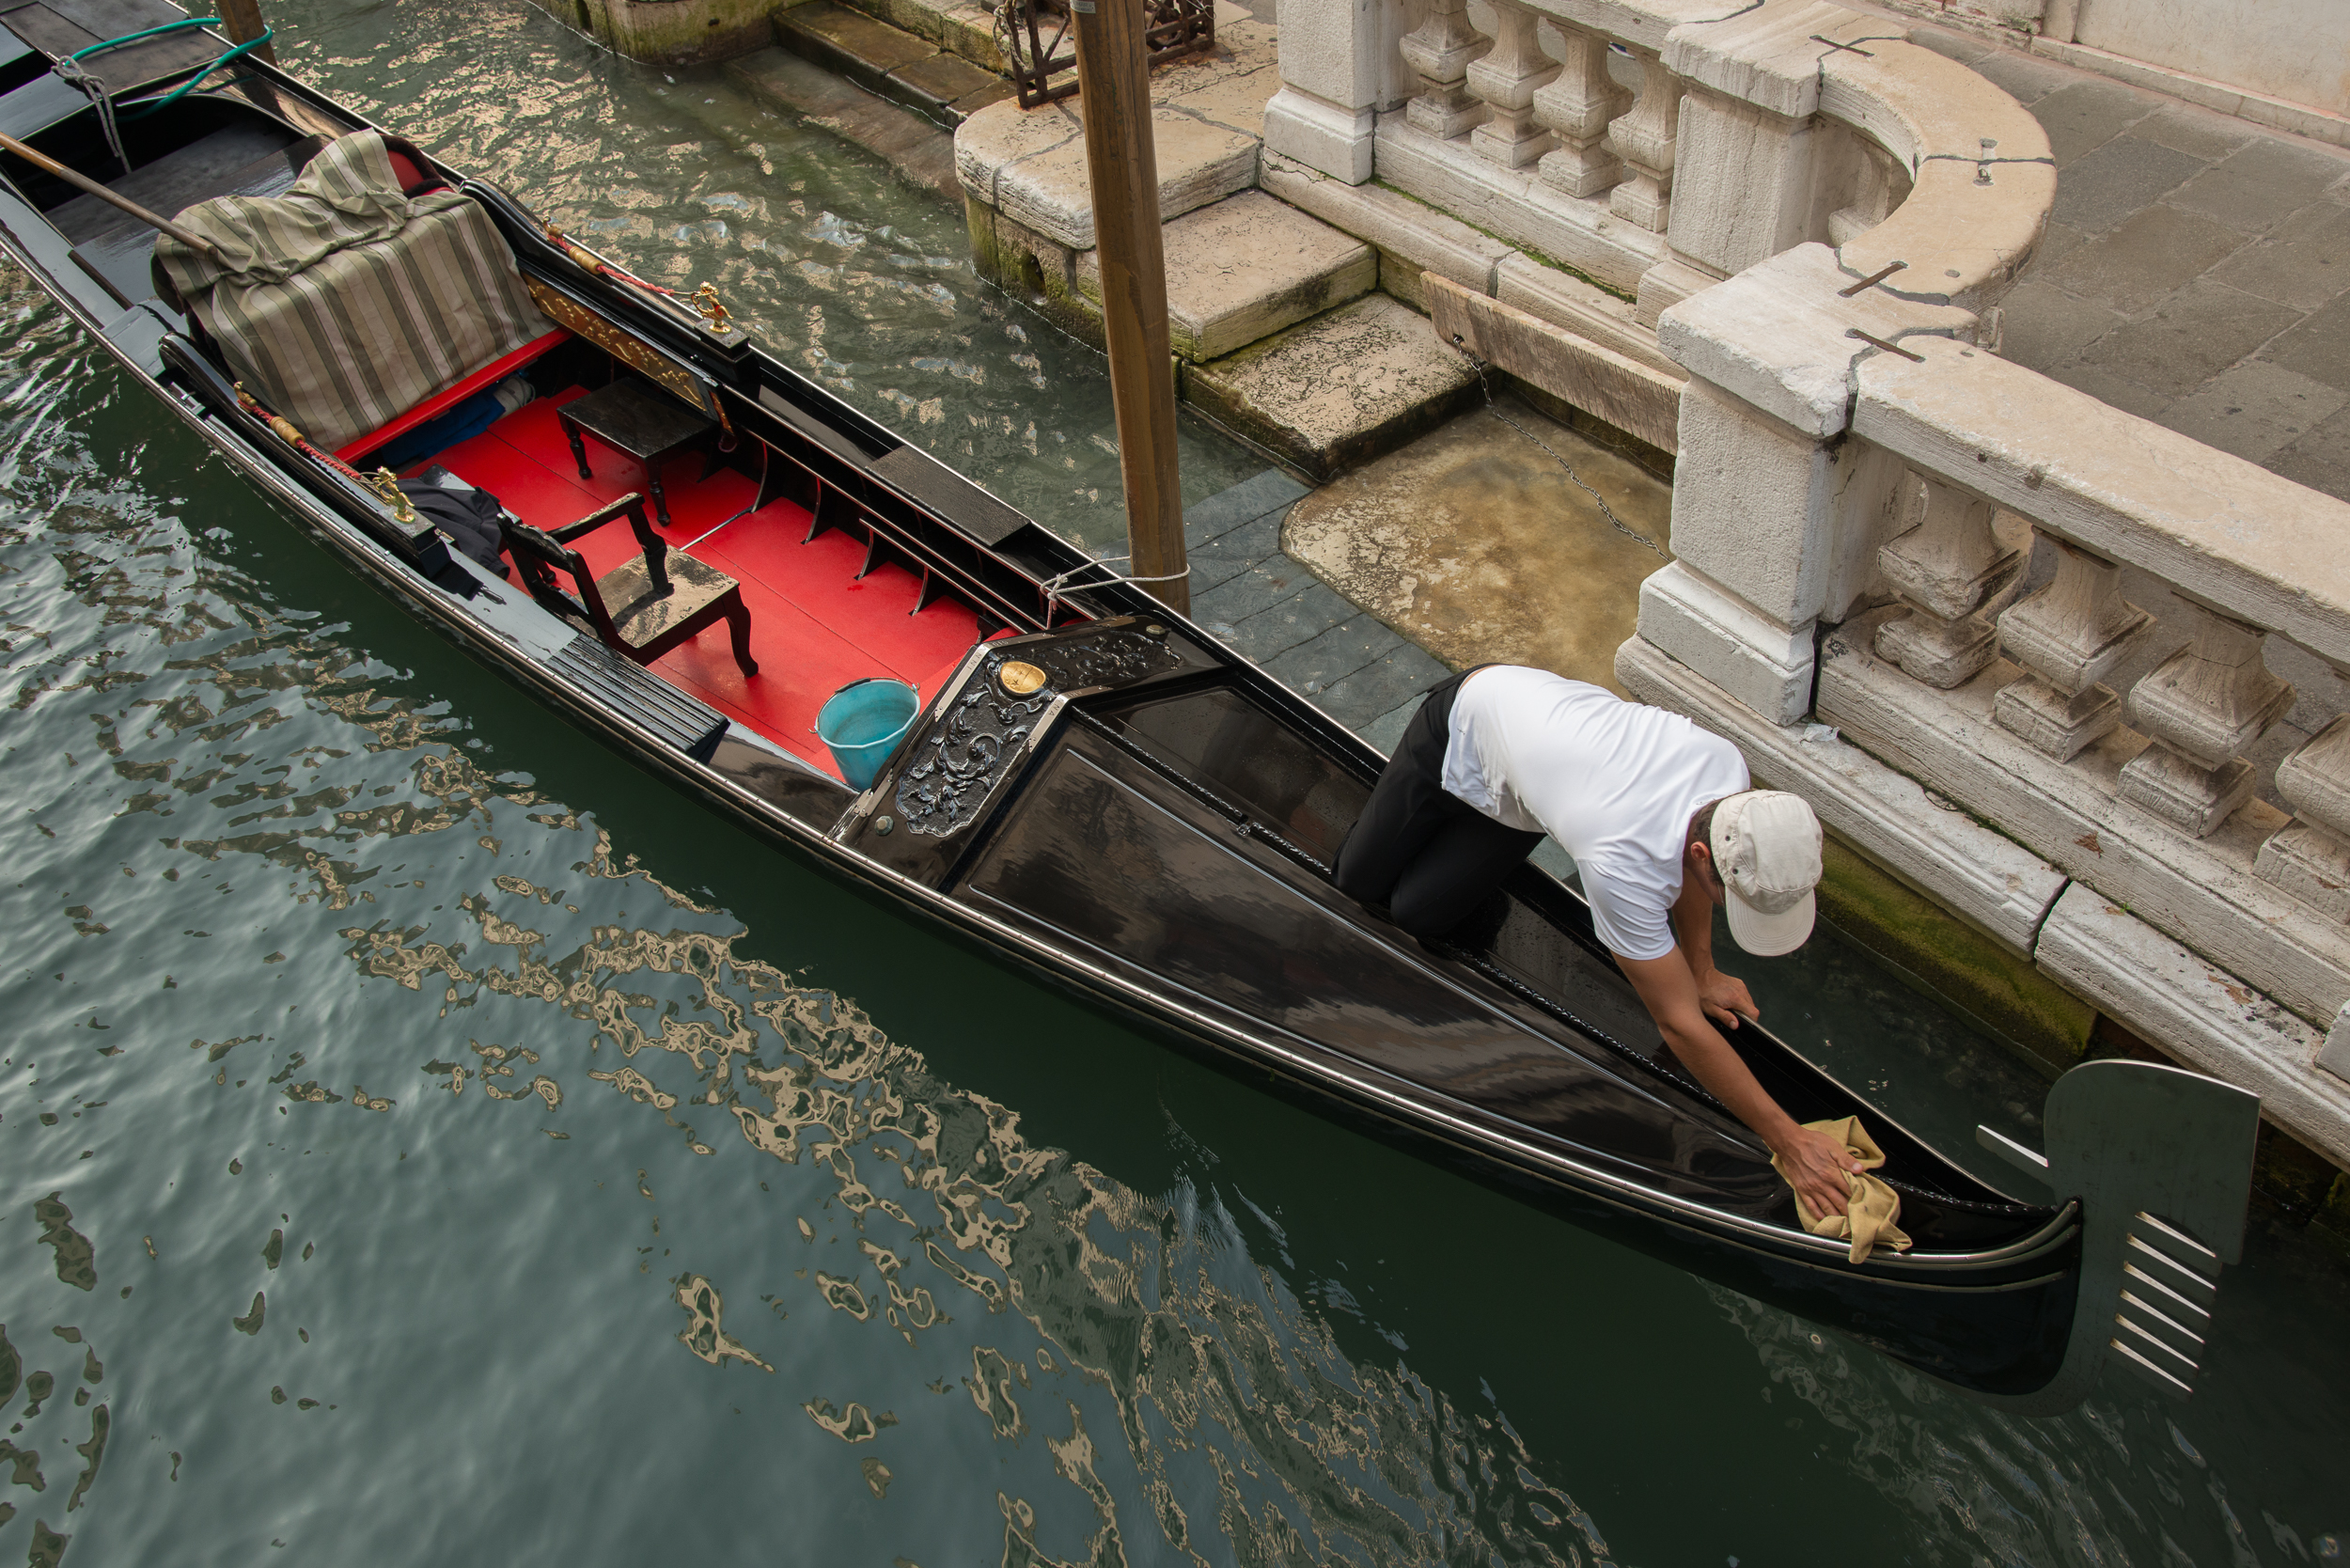 Early Morning Work Canal at Calle Canonica, Venice